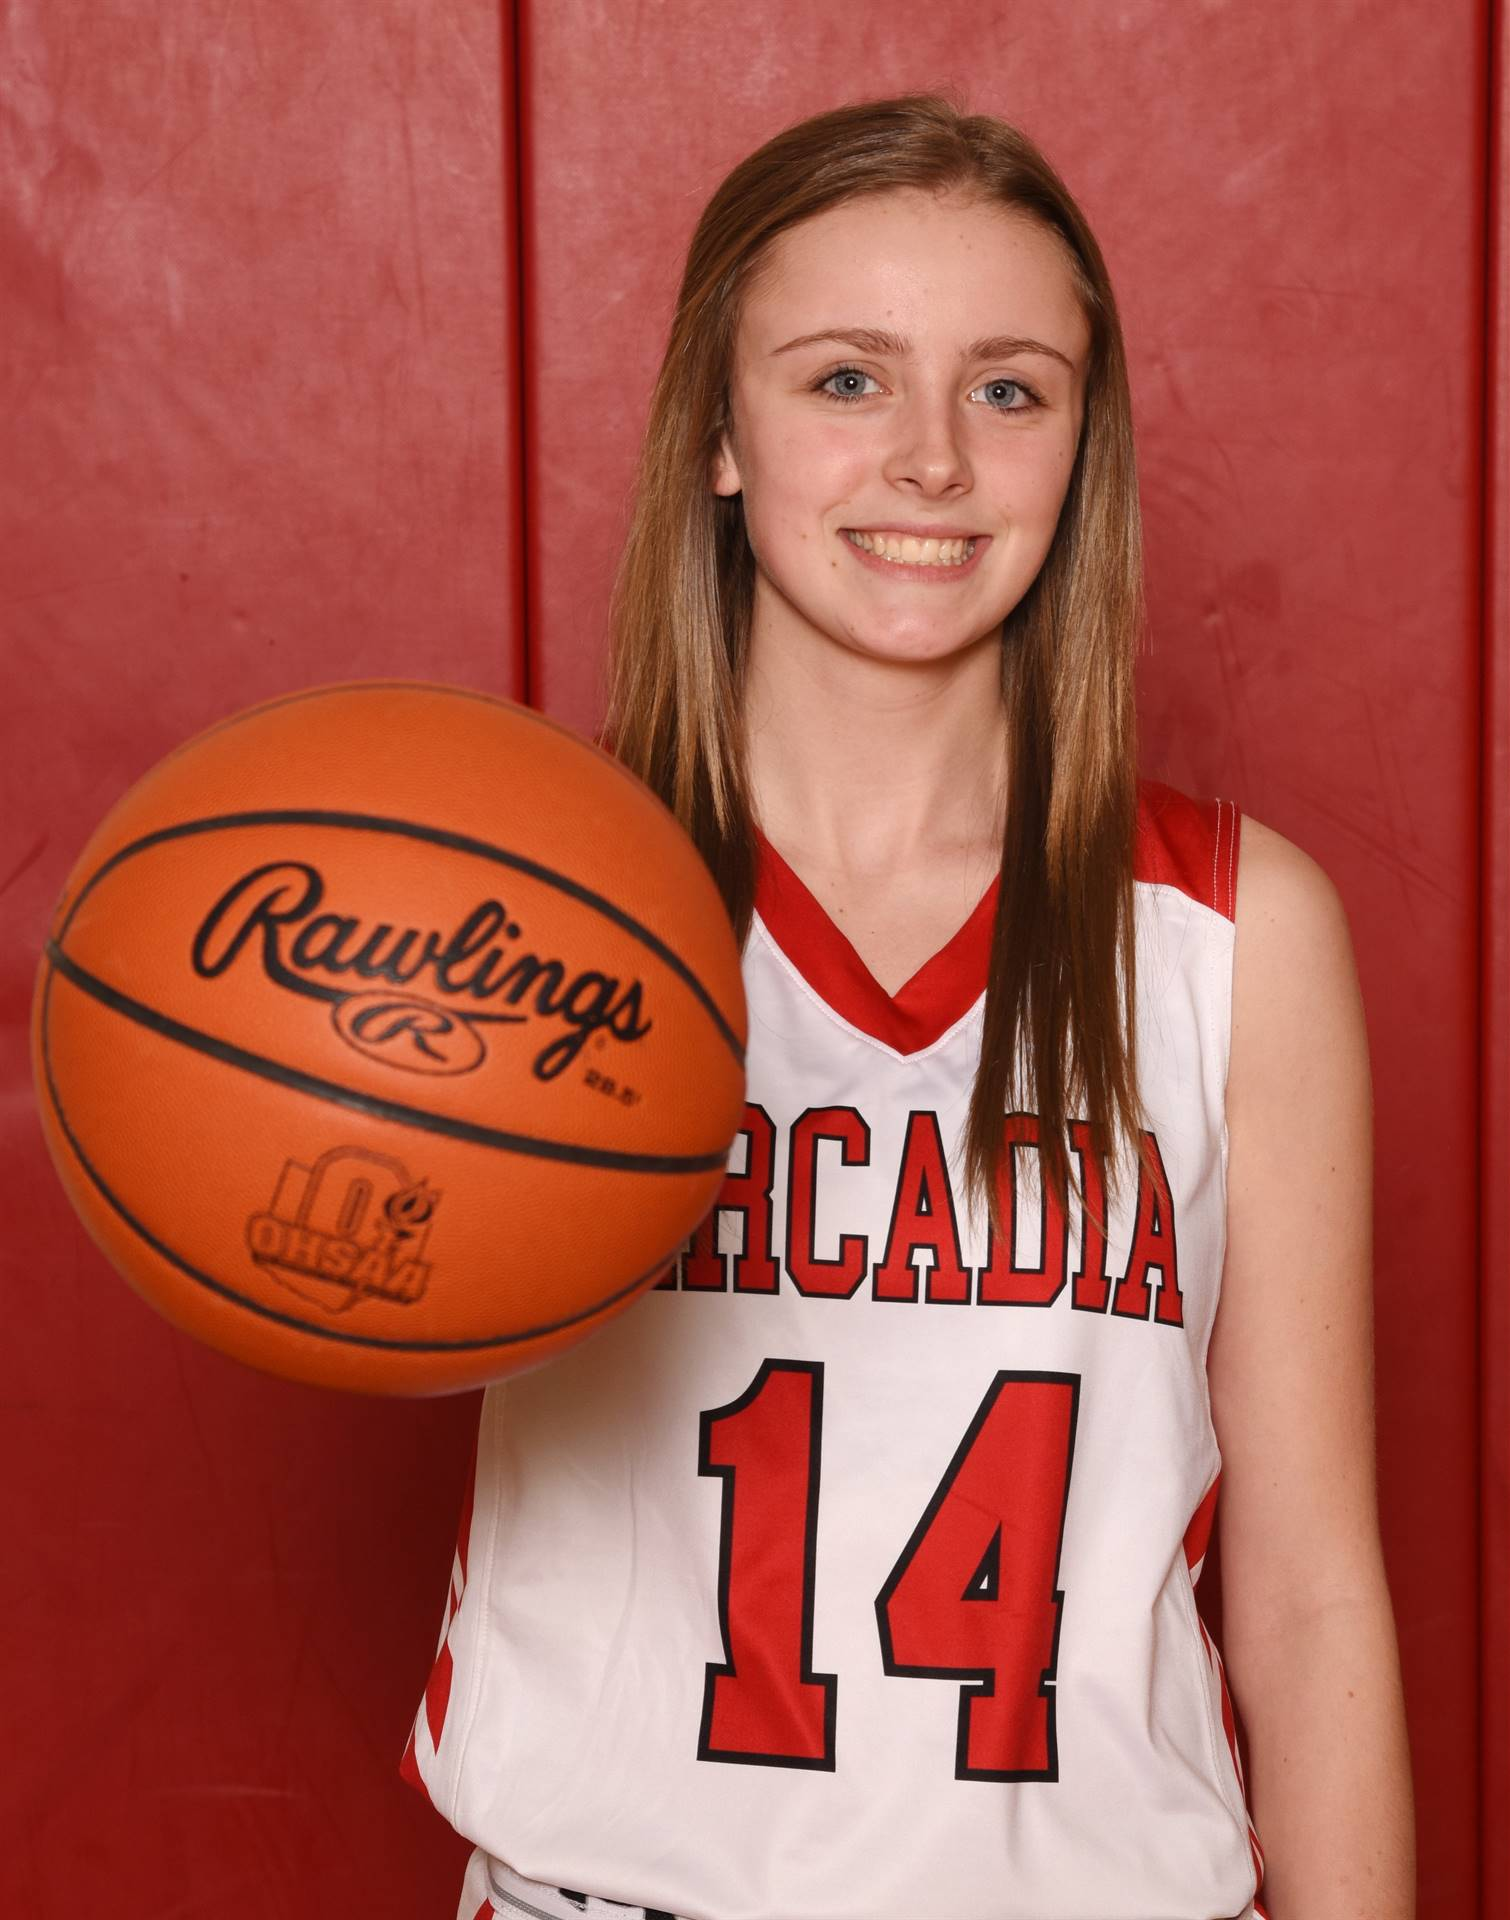 Senior Head Shot Photo - Megan Mock - Basketball